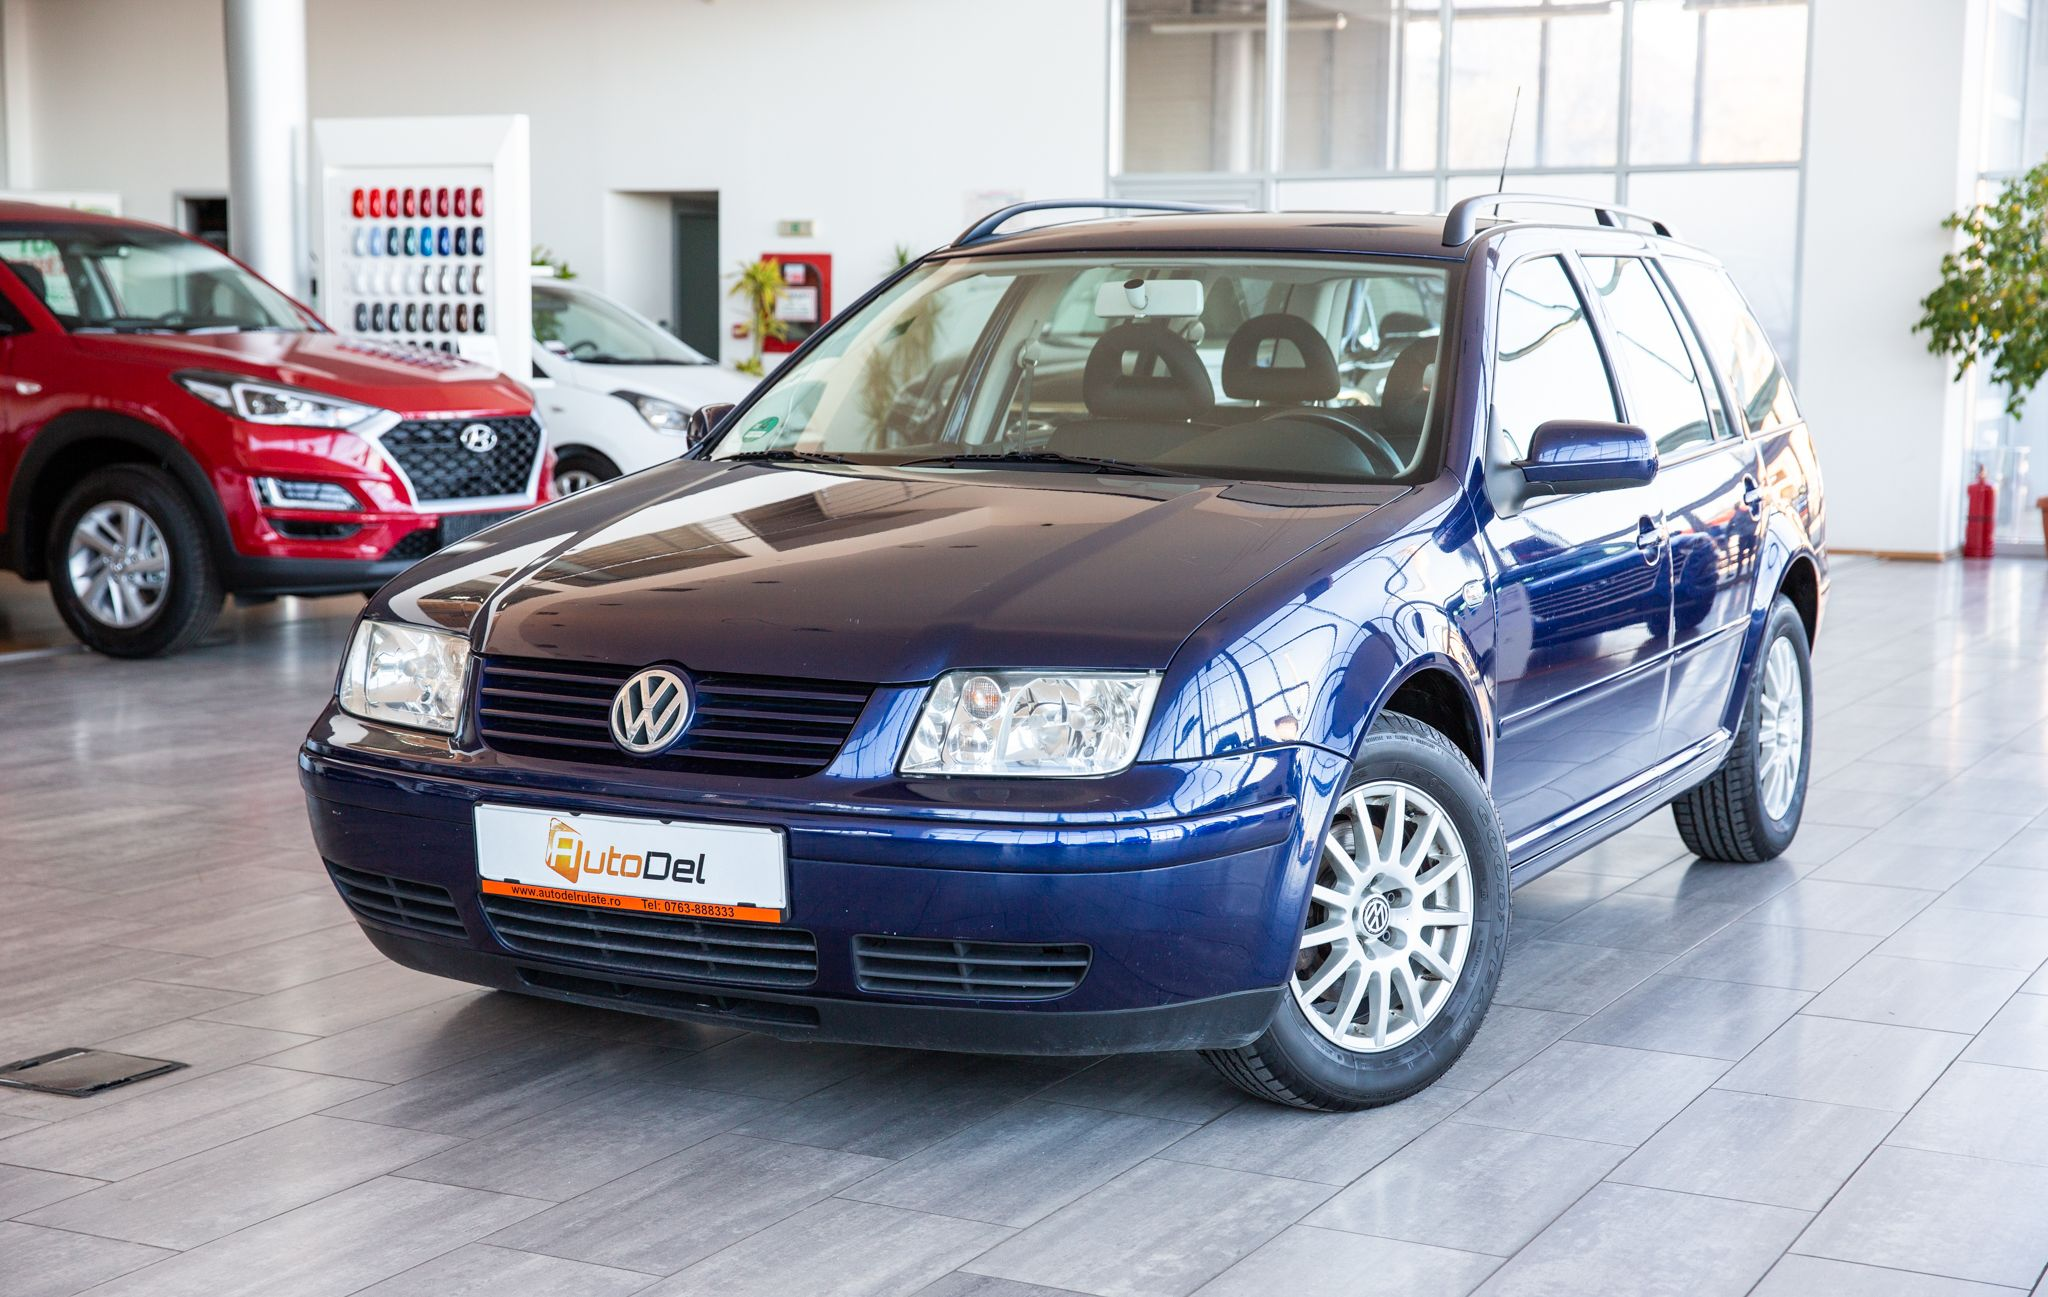 Volkswagen Bora 2002 Second Hand